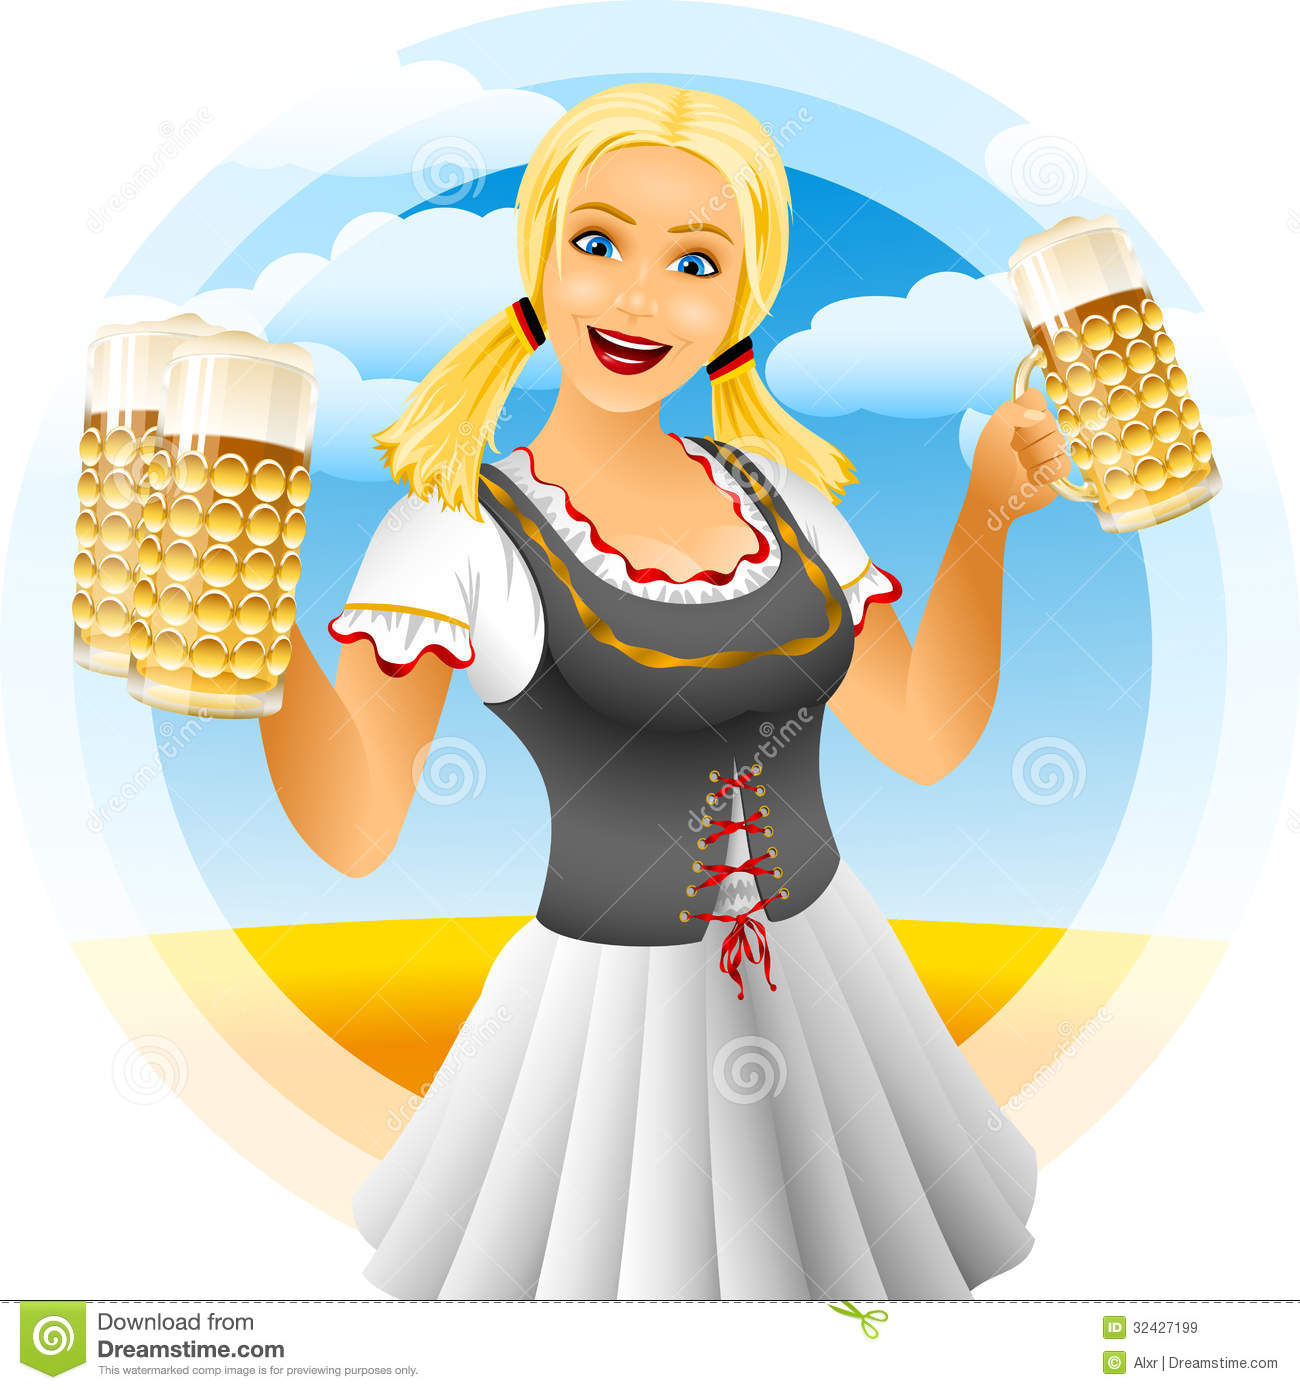 girl oktoberfest royalty free stock images image 32427199 free st patricks day clipart for facebook st patrick's day free clipart